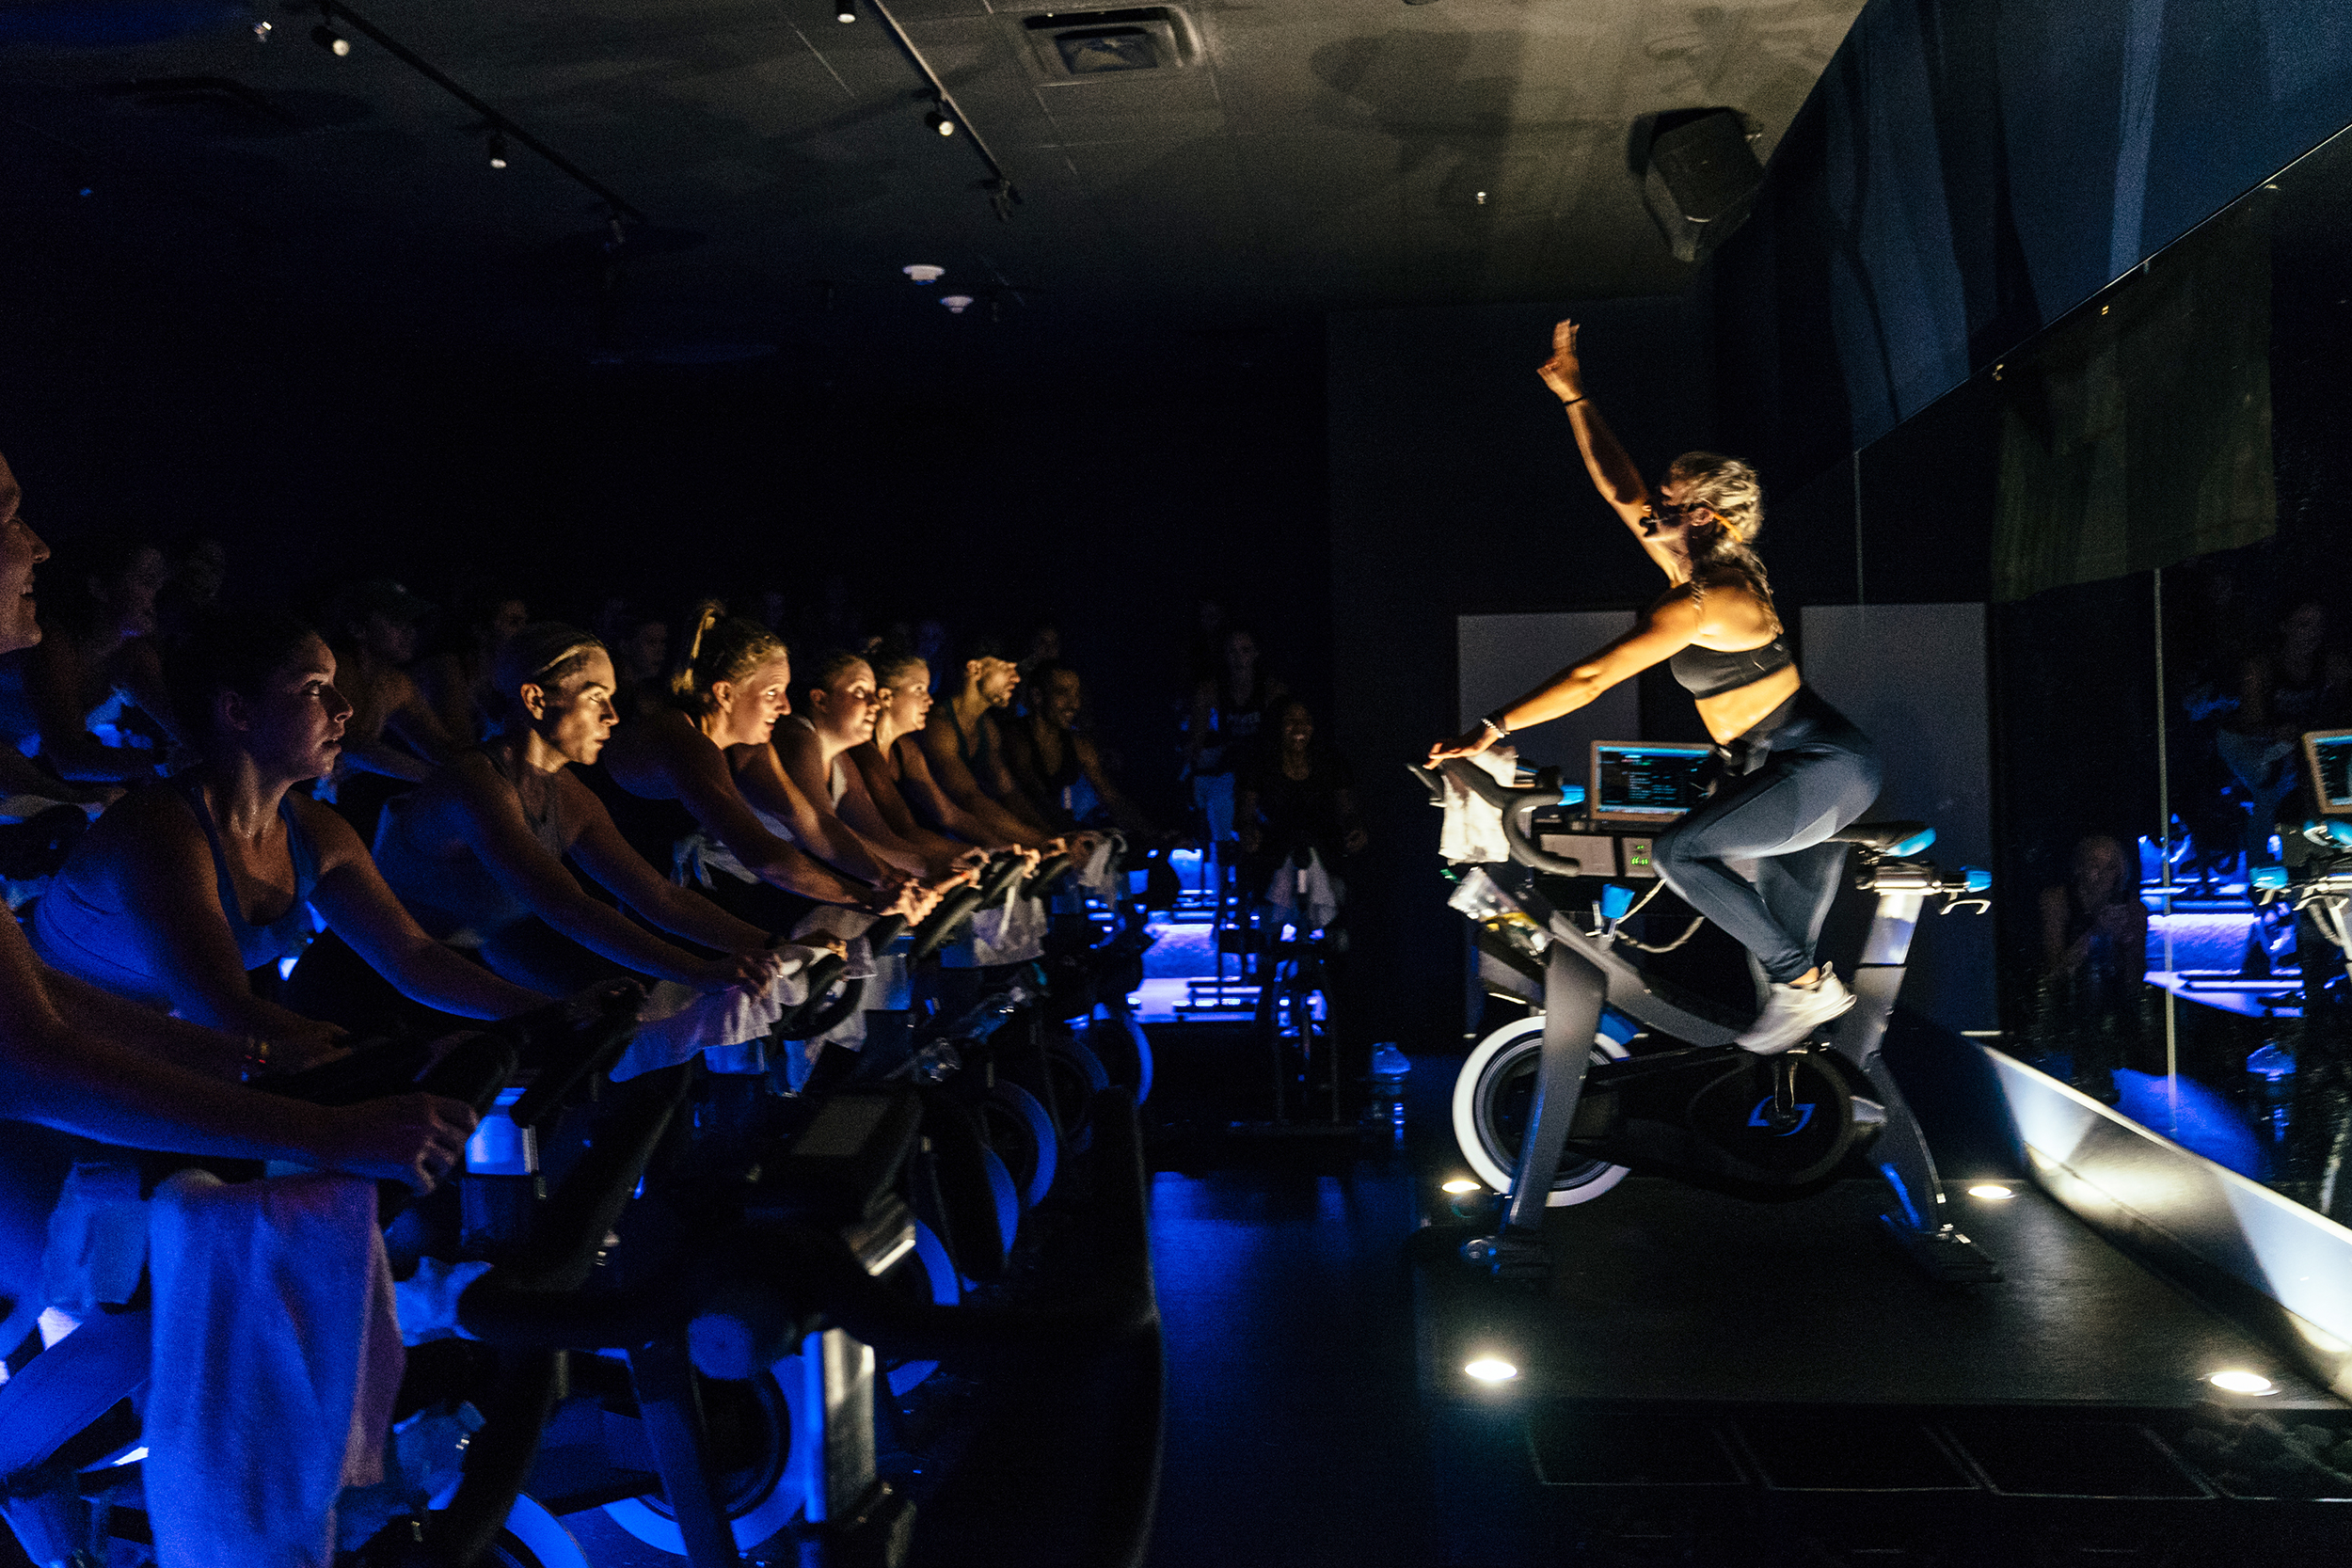 A spin class at Class is like a party on a bike.